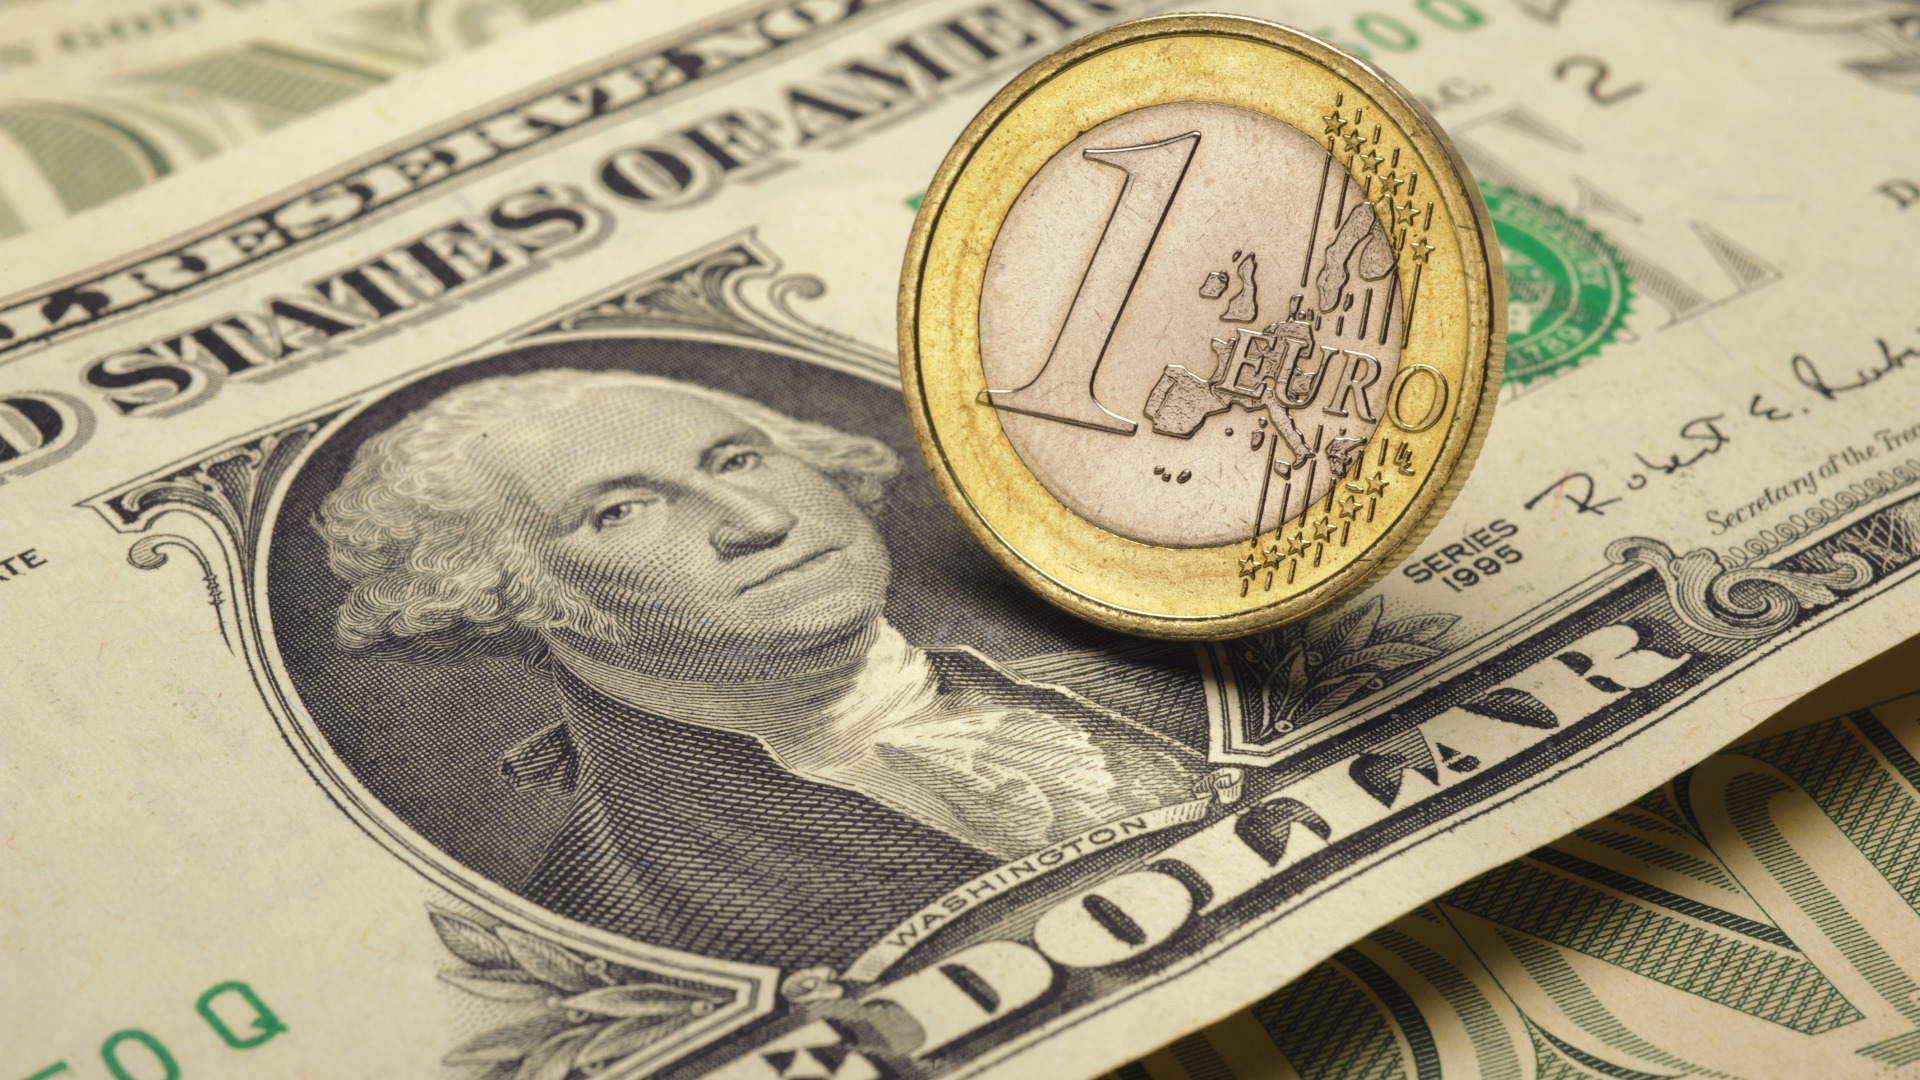 The strong dollar: will israeli consumers pay for it?